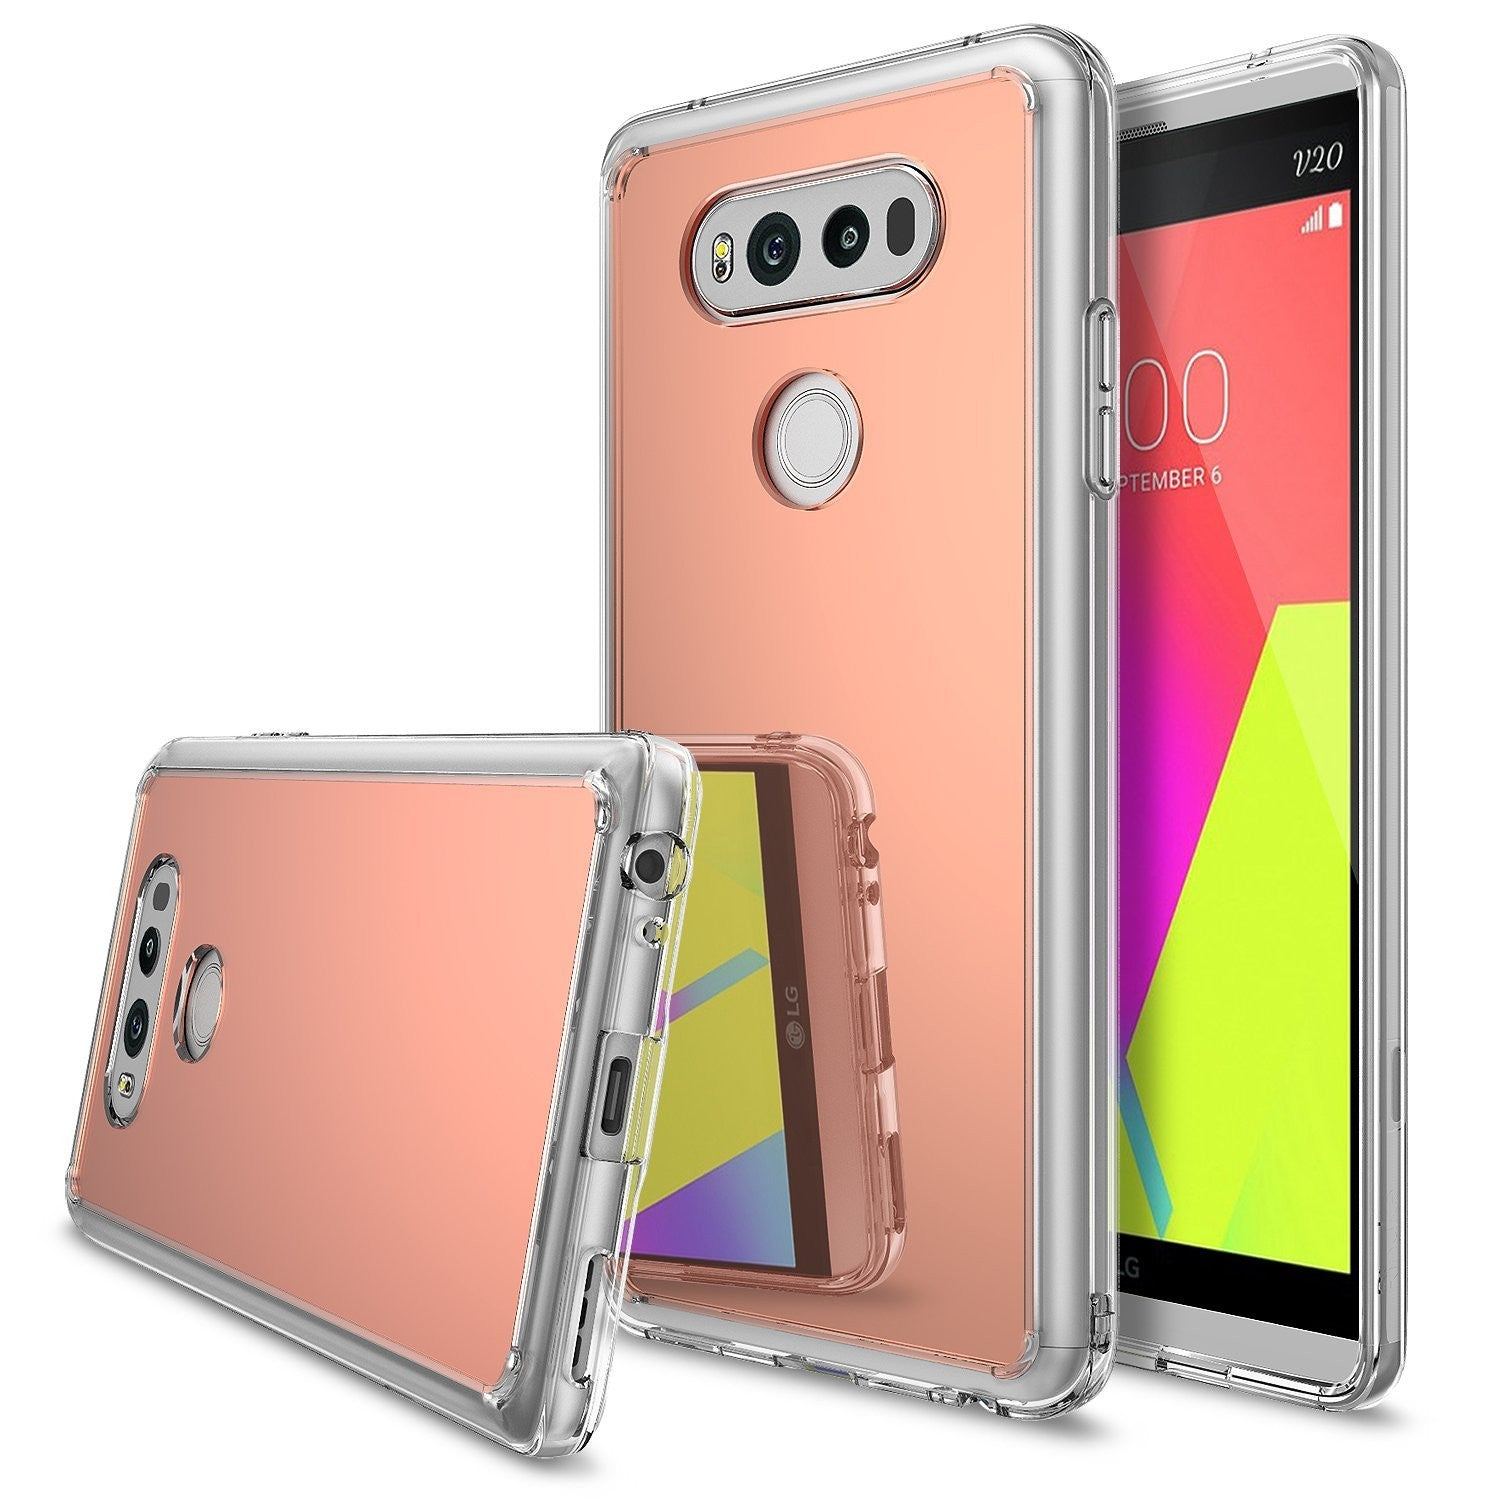 lg v20 case ringke fusion case mirror case bright reflection radiant luxury mirror case silver